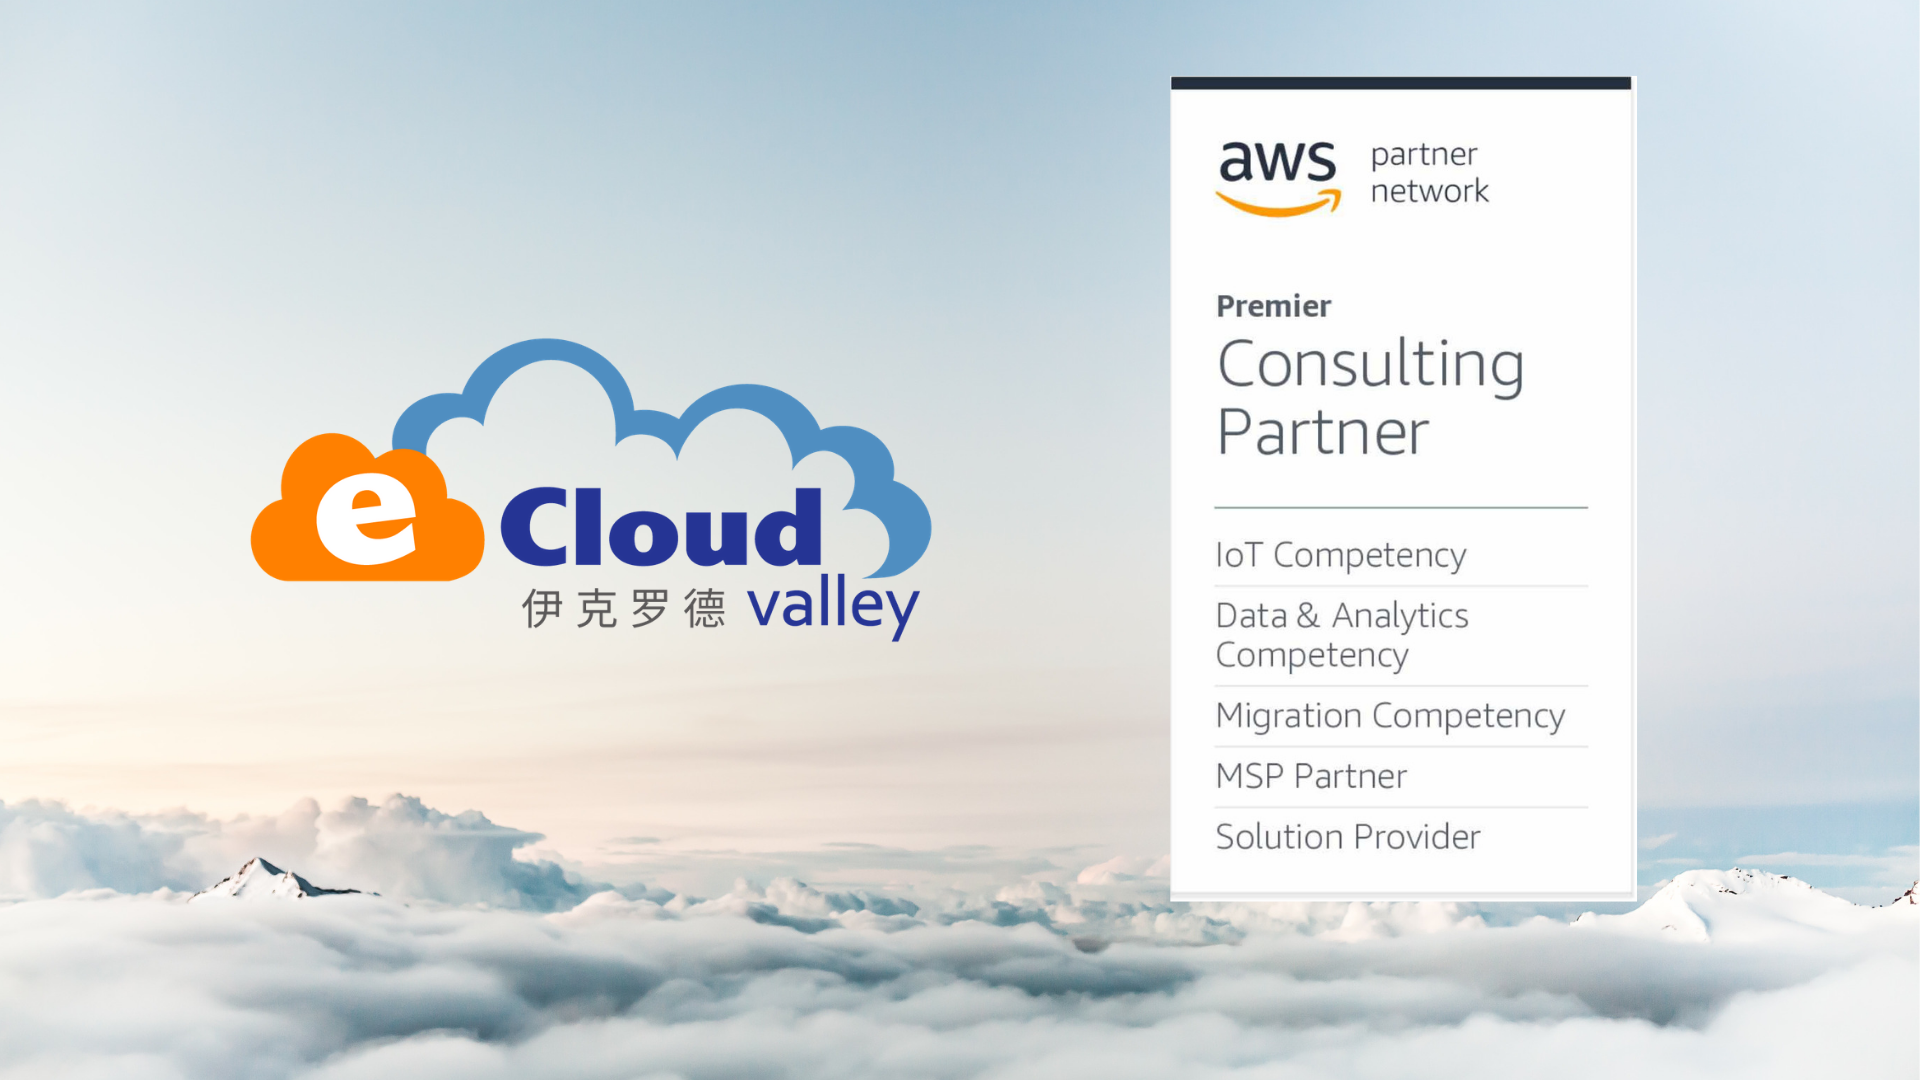 ECLOUDVALLEY ACHIEVES AWS MIGRATION COMPETENCY STATUS IN AWS CHINA REGION